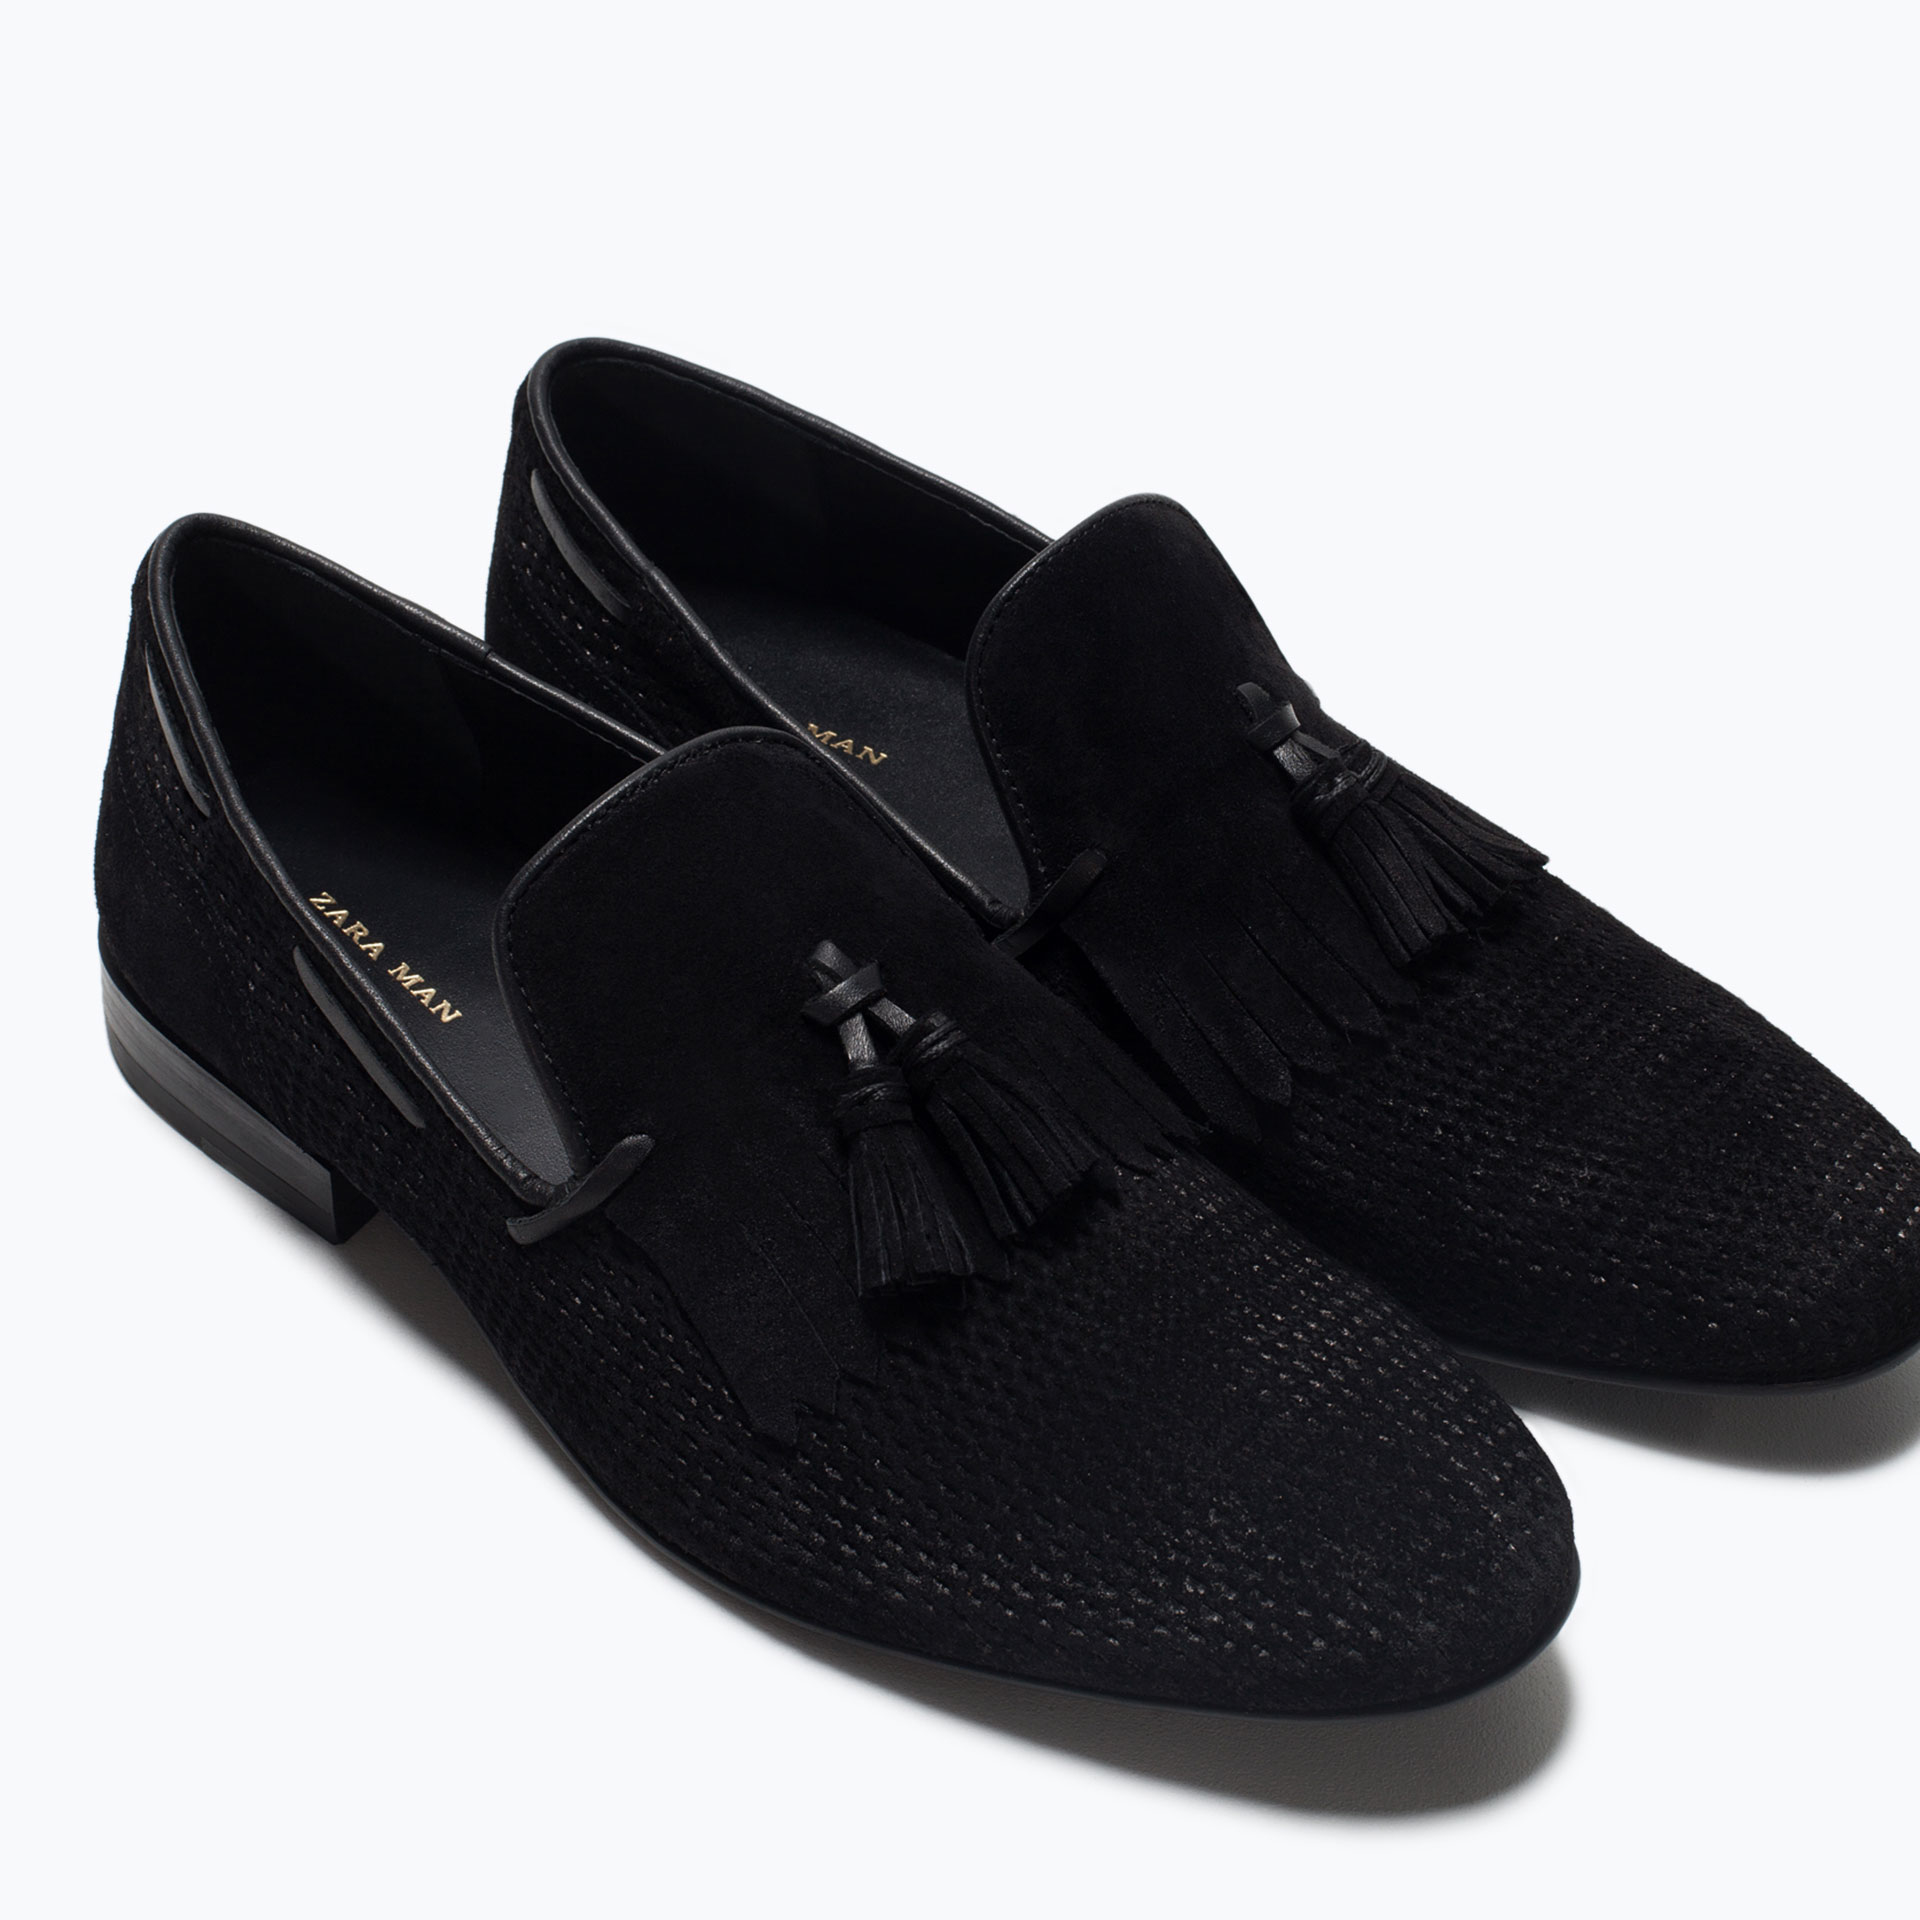 Black Men's Loafers: sashimicraft.ga - Your Online Men's Loafers Store! Get 5% in rewards with Club O!